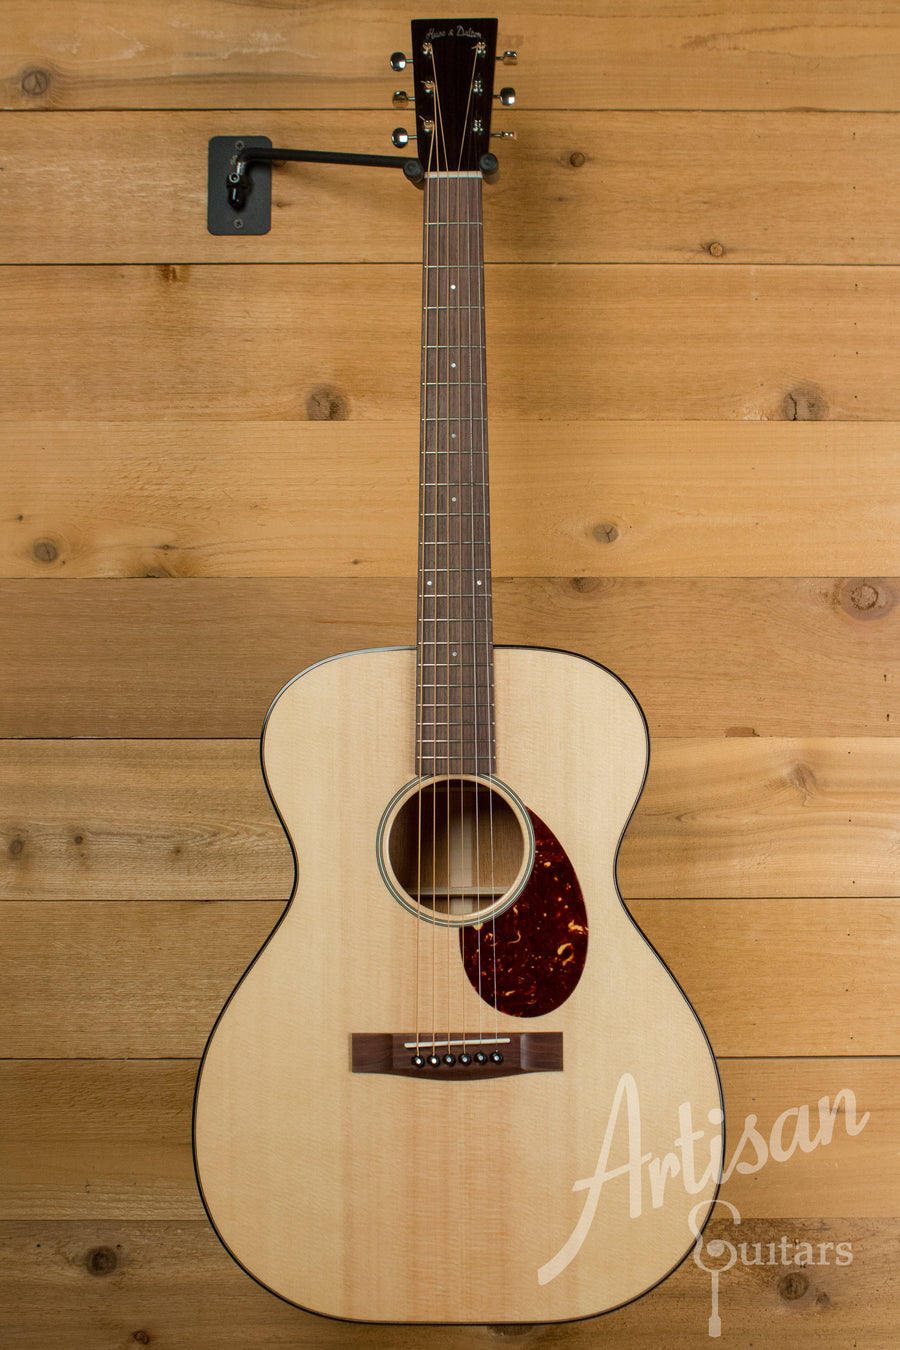 Huss and Dalton Road Edition OM Sitka Spruce and Mahogany ID-10646 - Artisan Guitars